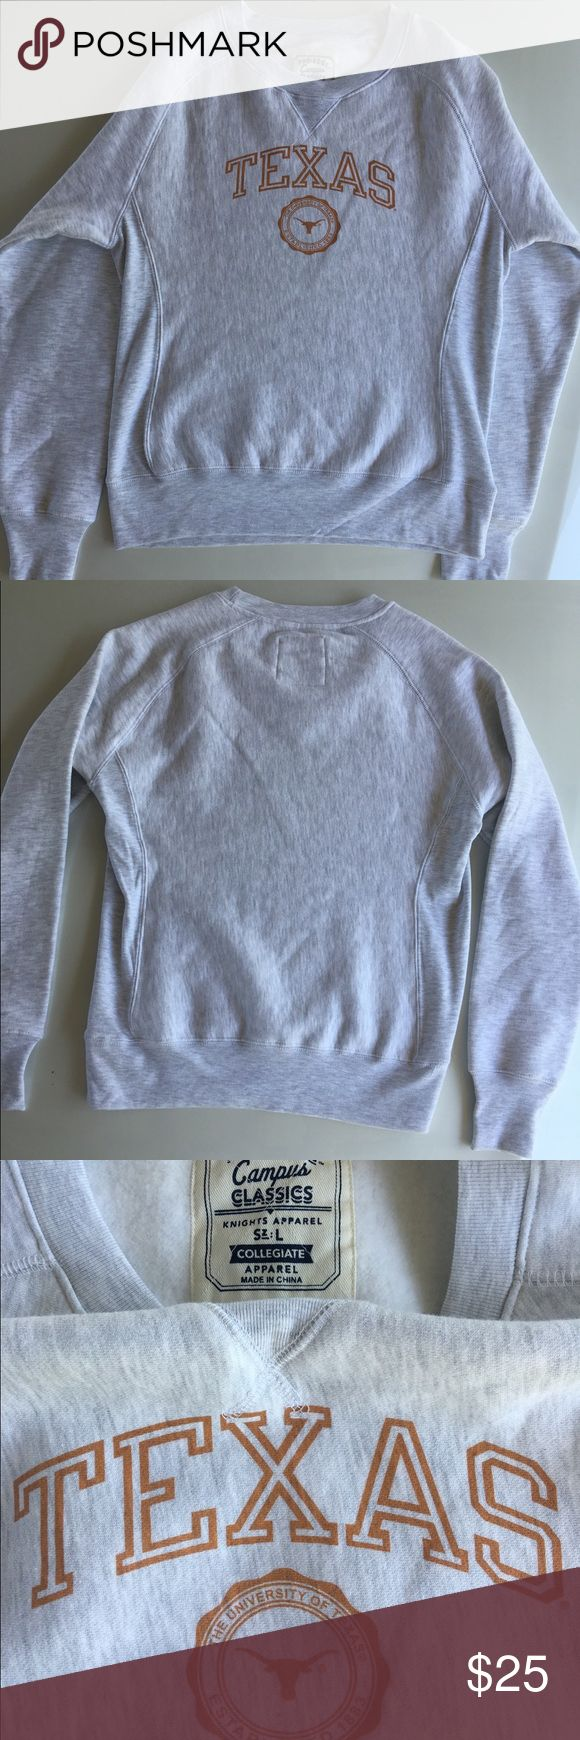 UT Austin Sweatshirt The University of Texas at Austin. NWOT light gray sweatshirt. Love this but never got a chance to wear since I have so many other UT apparel. 82% Cotton/18% Polyester. 🚫No Trades Tops Sweatshirts & Hoodies